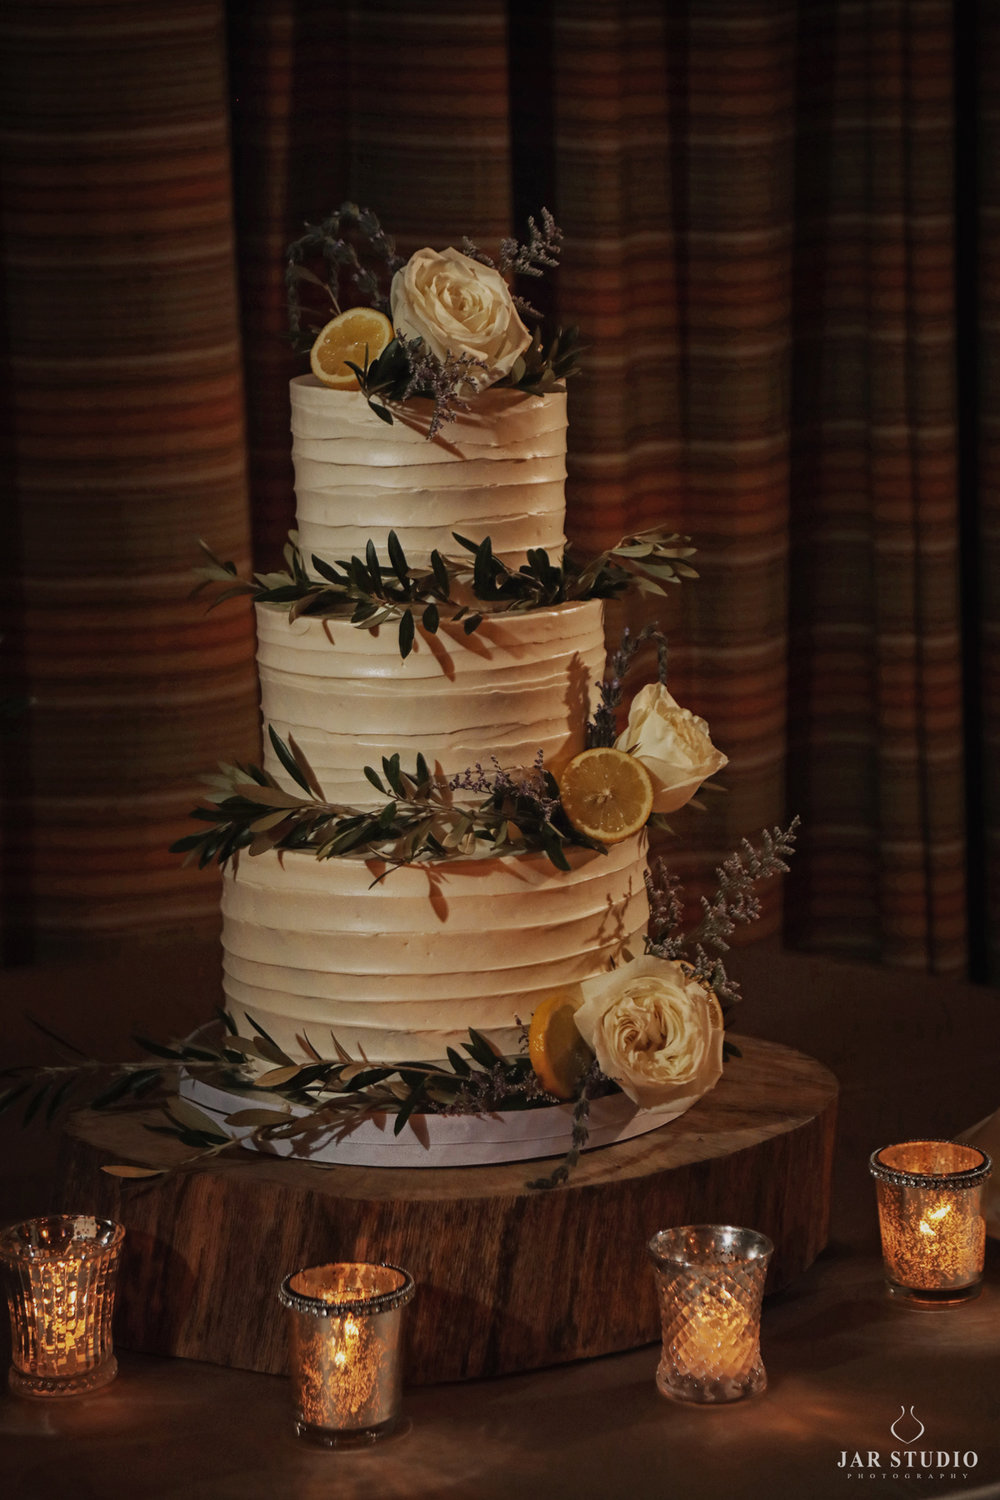 36-lemon-wedding-cake-amazing-jarstudio-photography.jpg